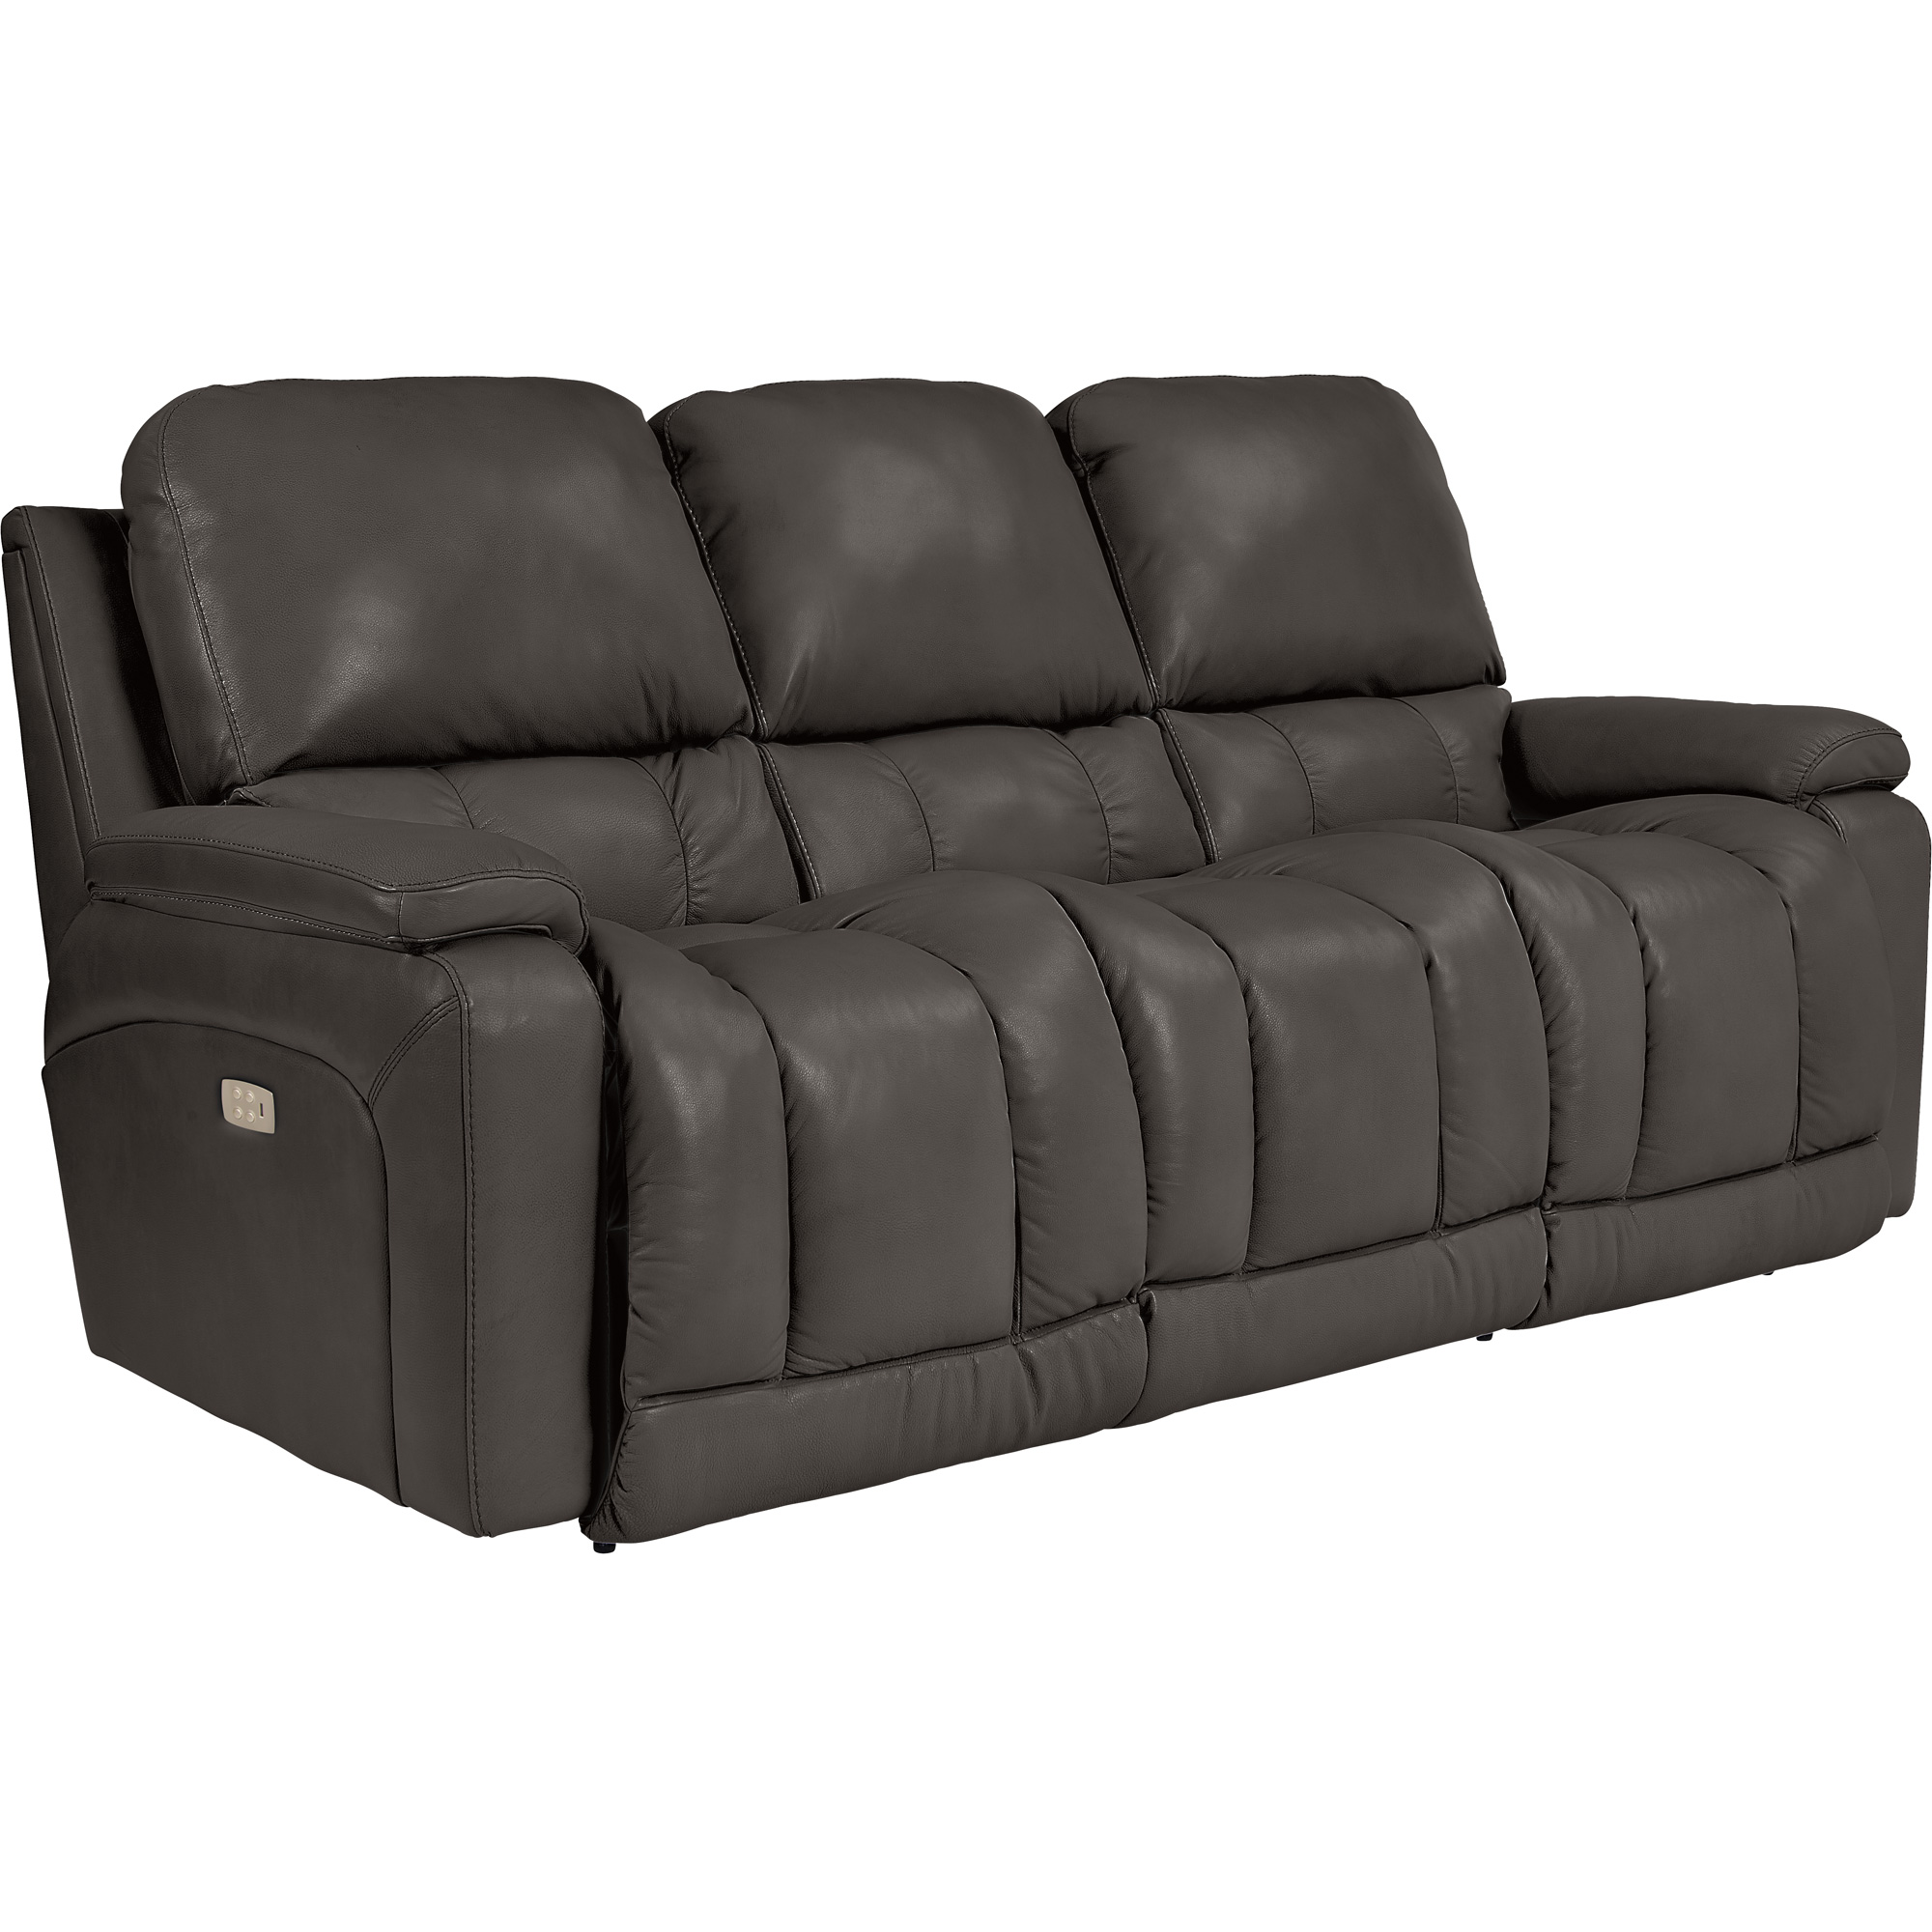 La-Z-Boy | Greyson Shitake Power Plus Reclining Sofa